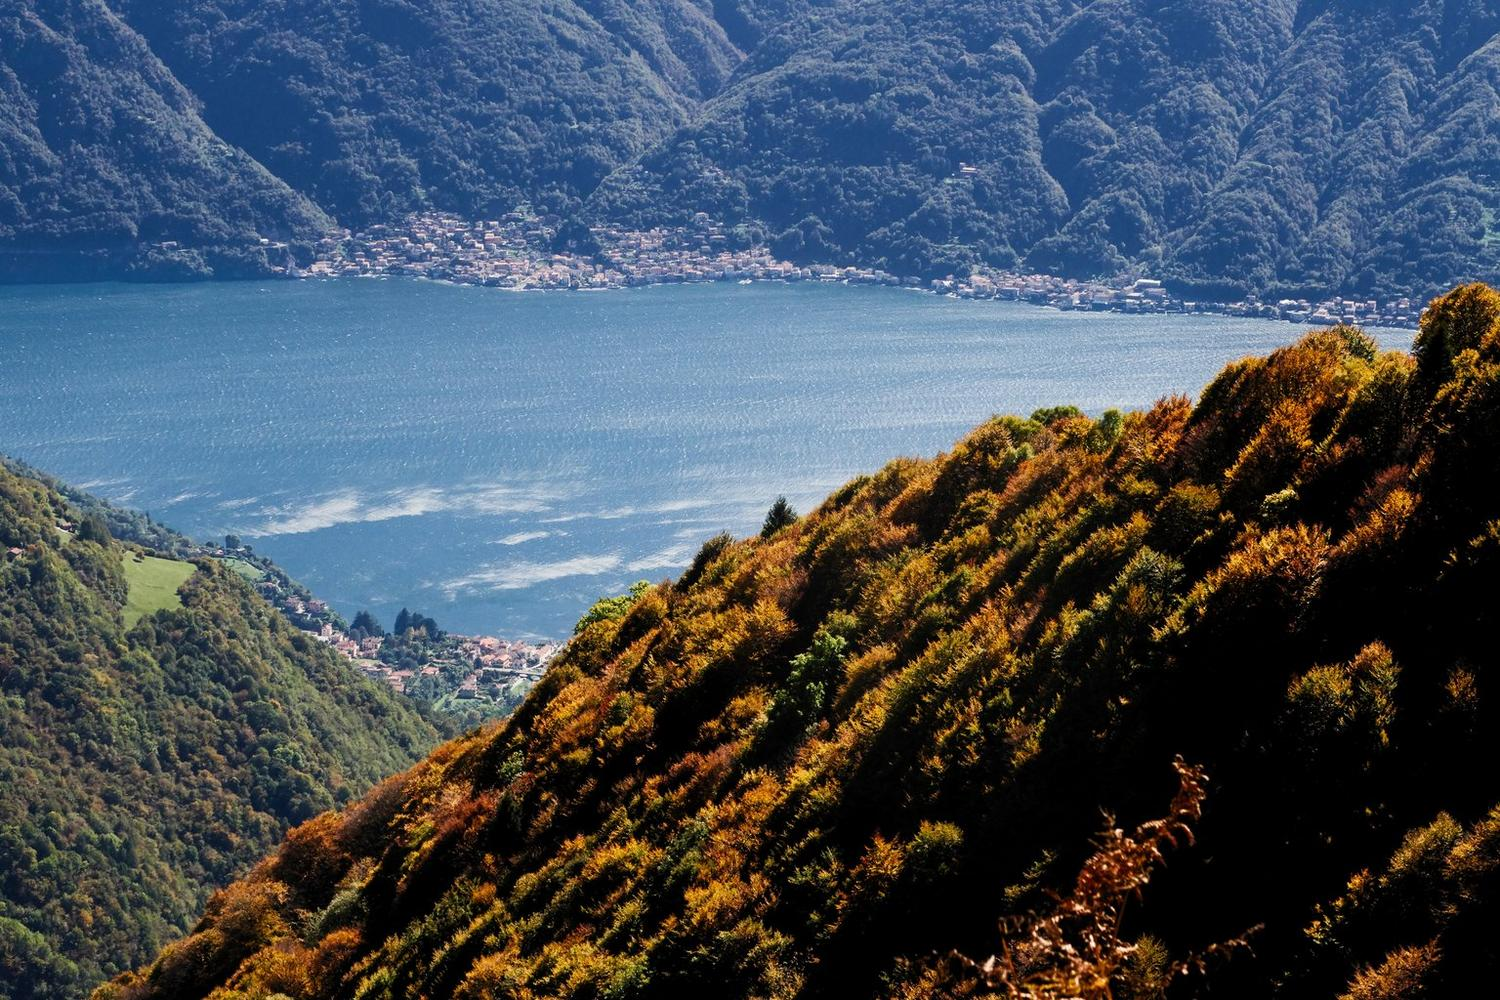 Lake Como Escape (Giro di Lombardia)